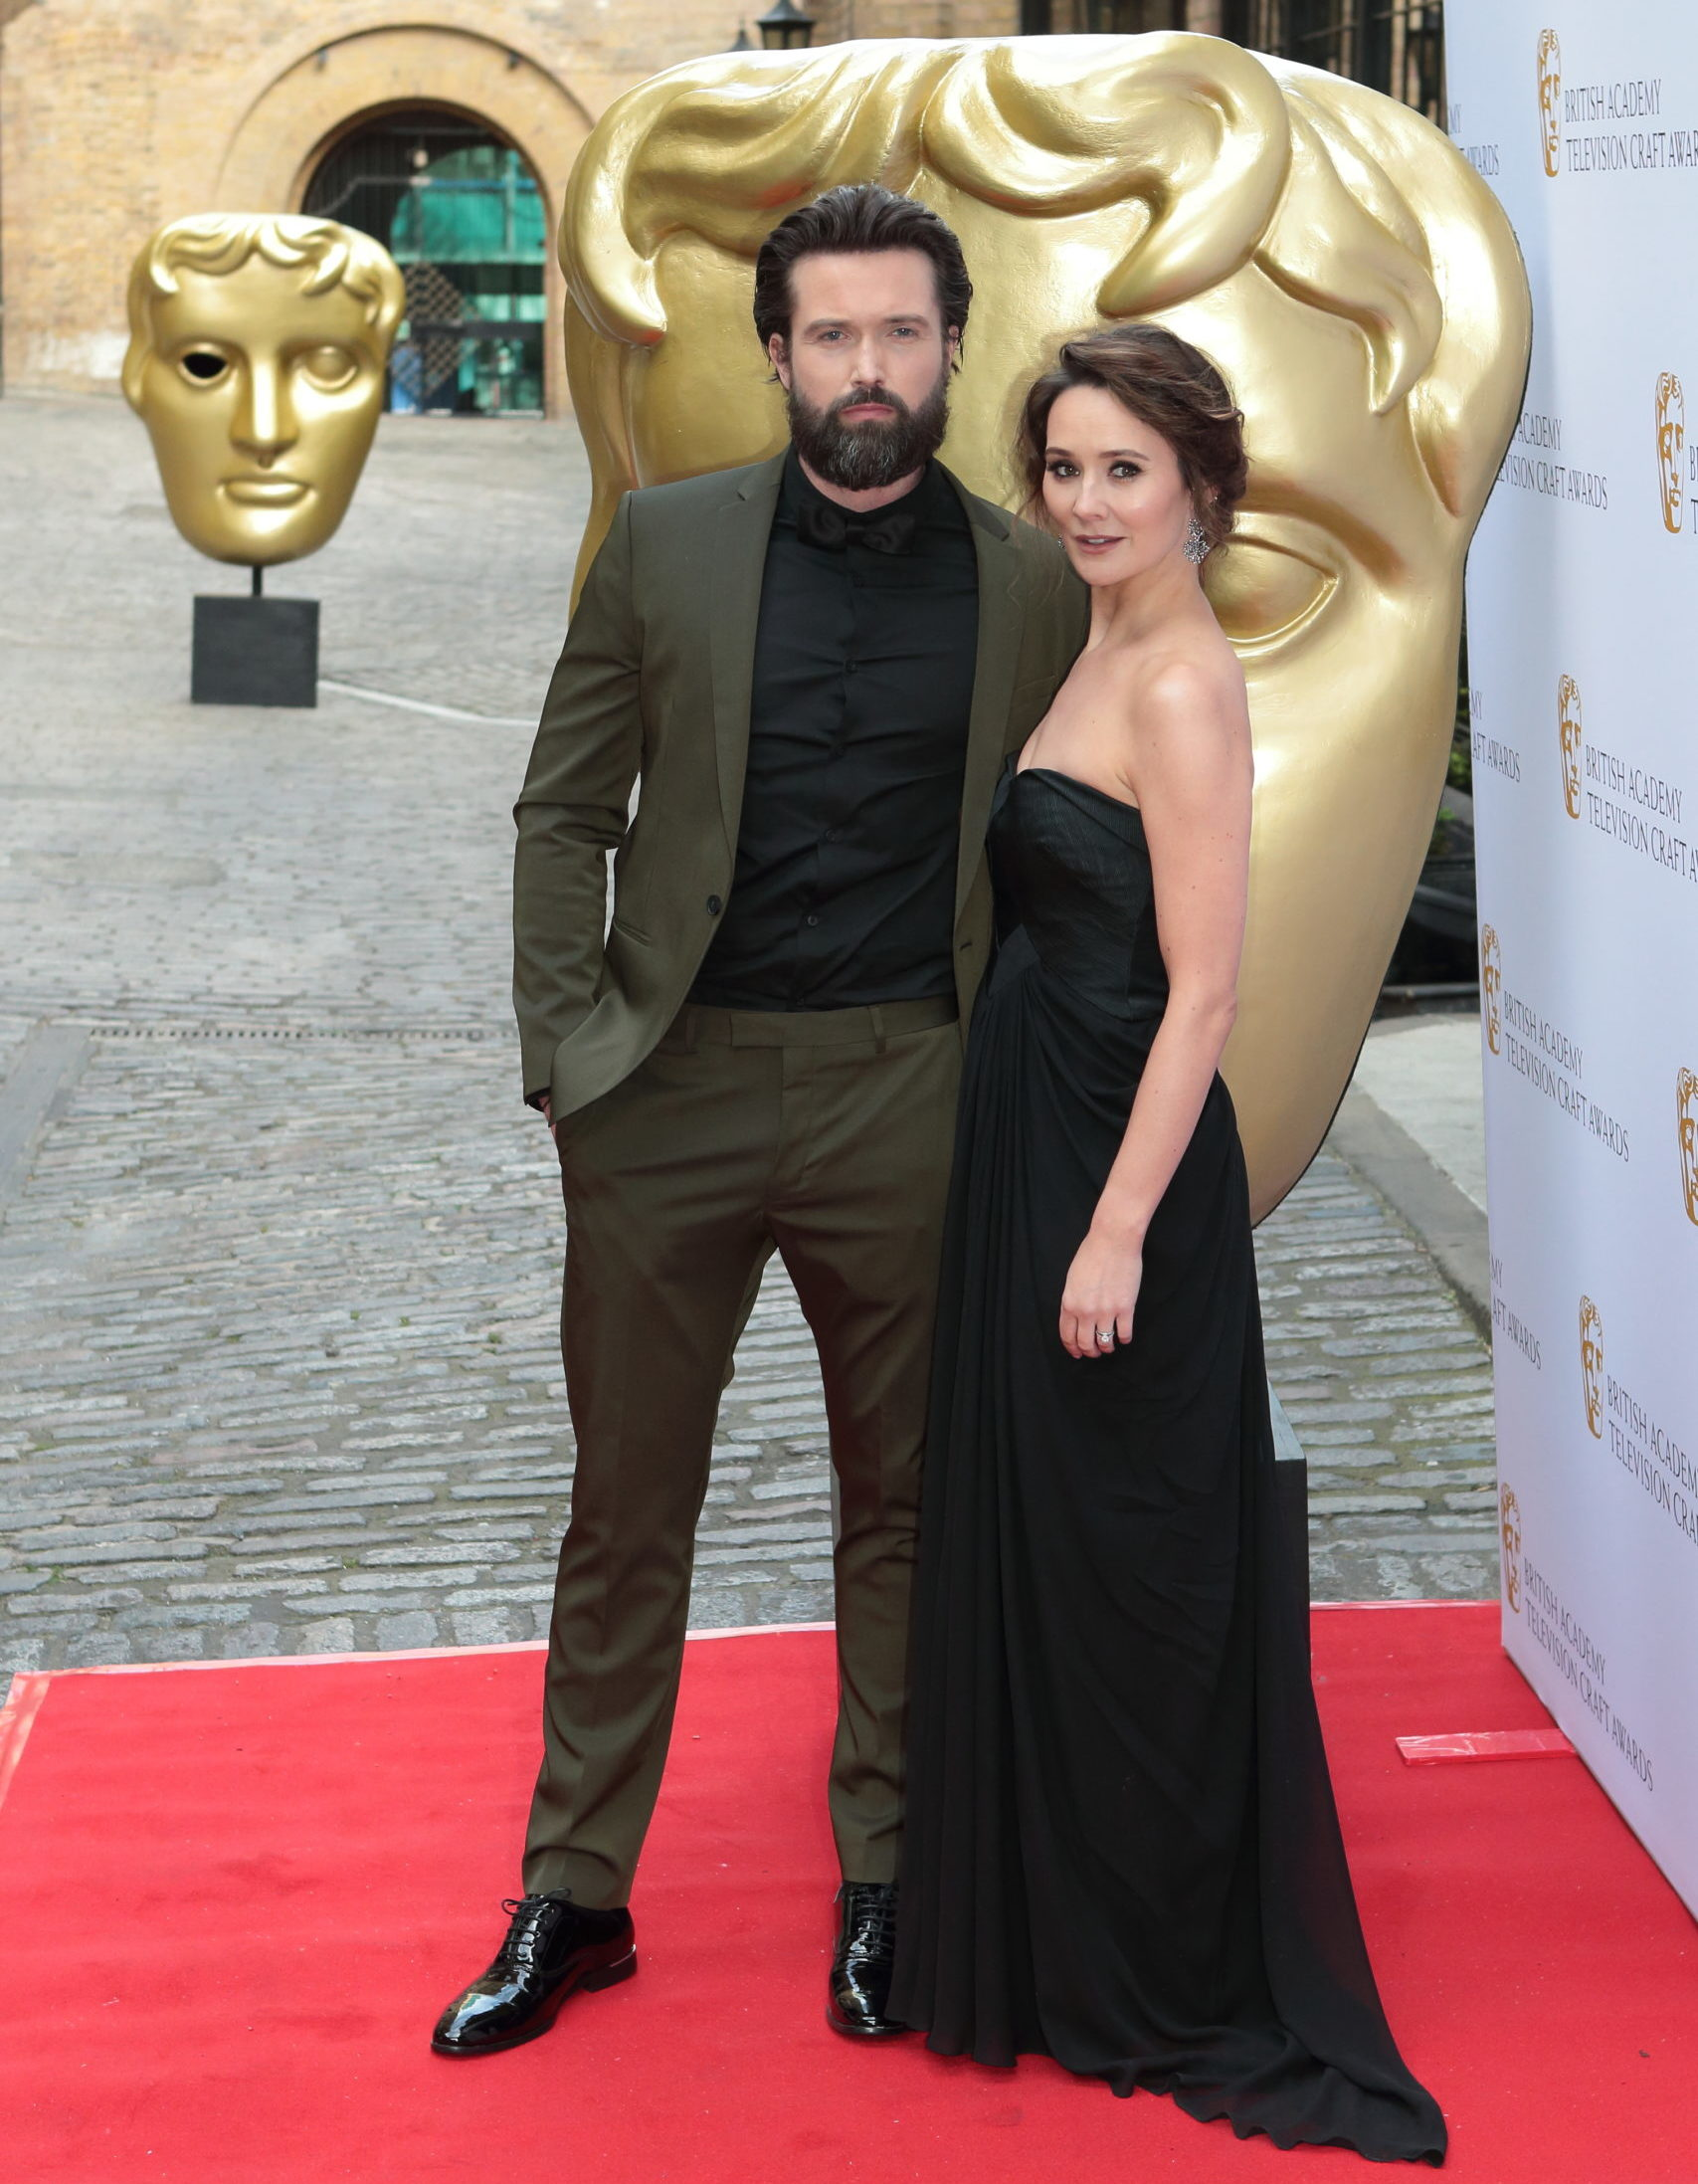 Claire Cooper and Emmett Scanlan